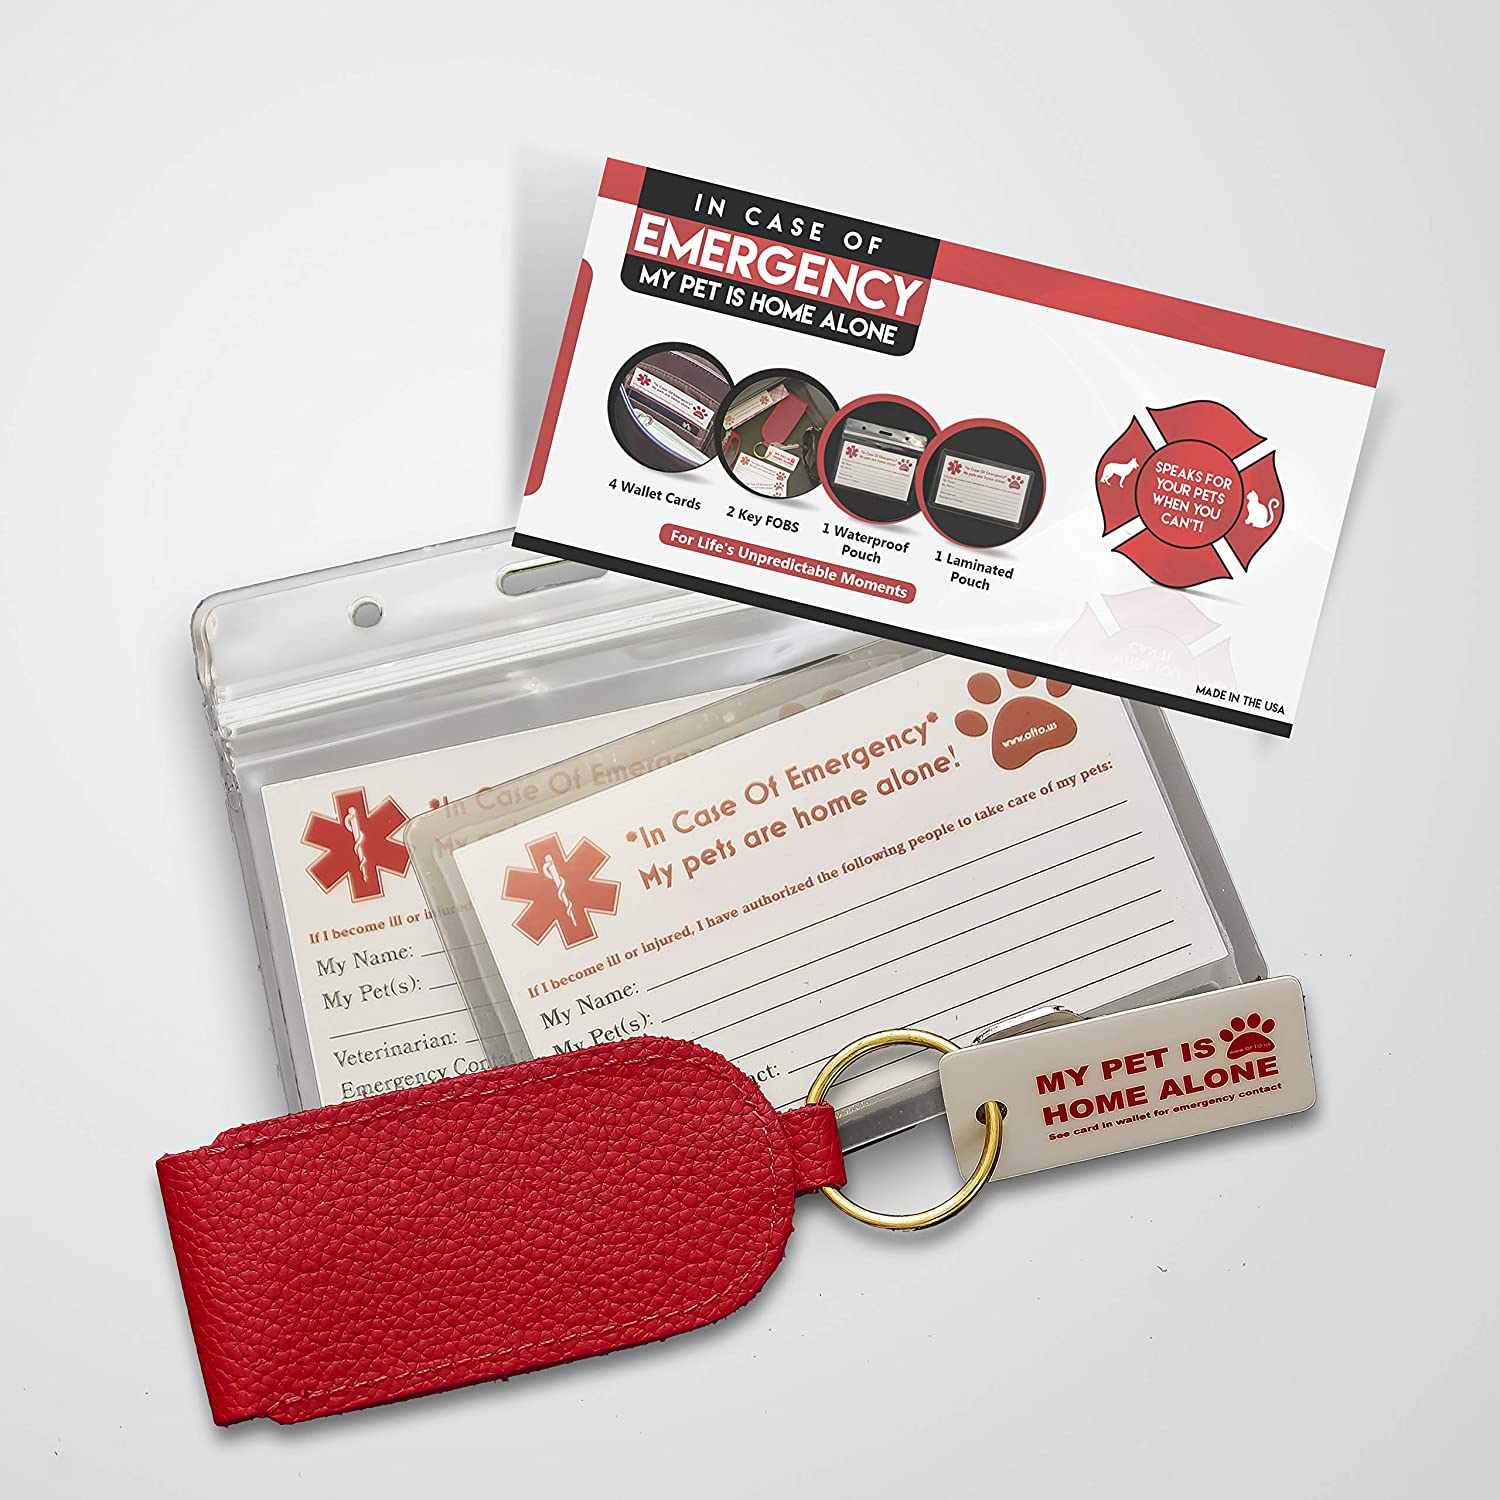 """OFTO ICE Kit - 4 Wallet-Sized In Case of Emergency Contact Cards, 2 """"My Pet is Home Alone"""" Key Fobs, a Waterproof Pouch & Self-Sealing Laminated Pouch -Use as Personal, Family, Pet Care Cards USA MADE"""